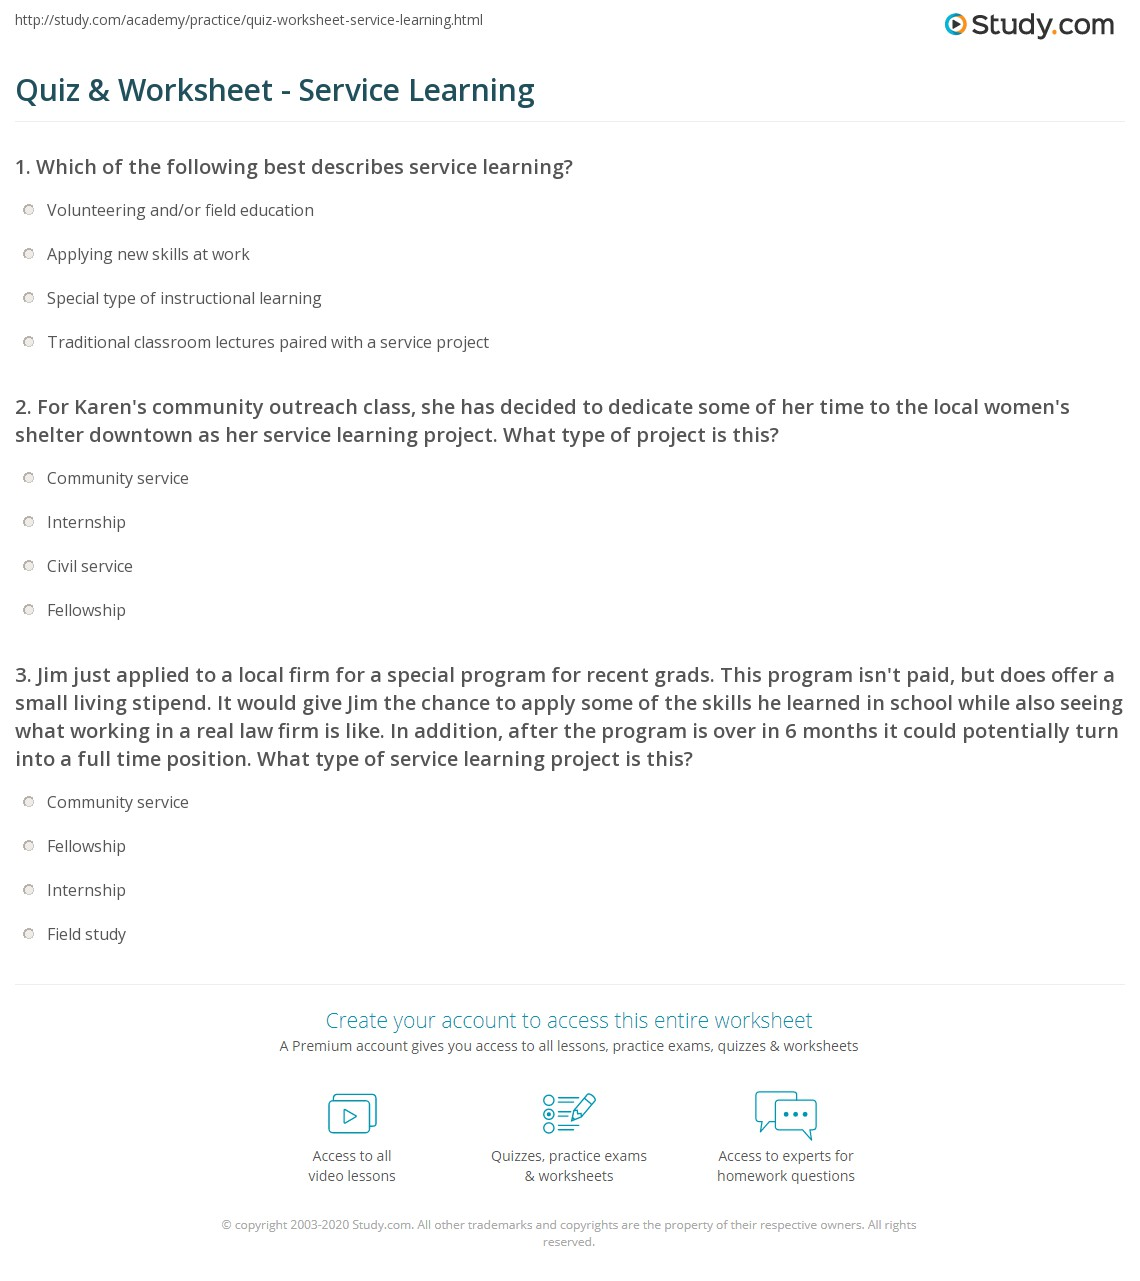 quiz & worksheet - service learning | study